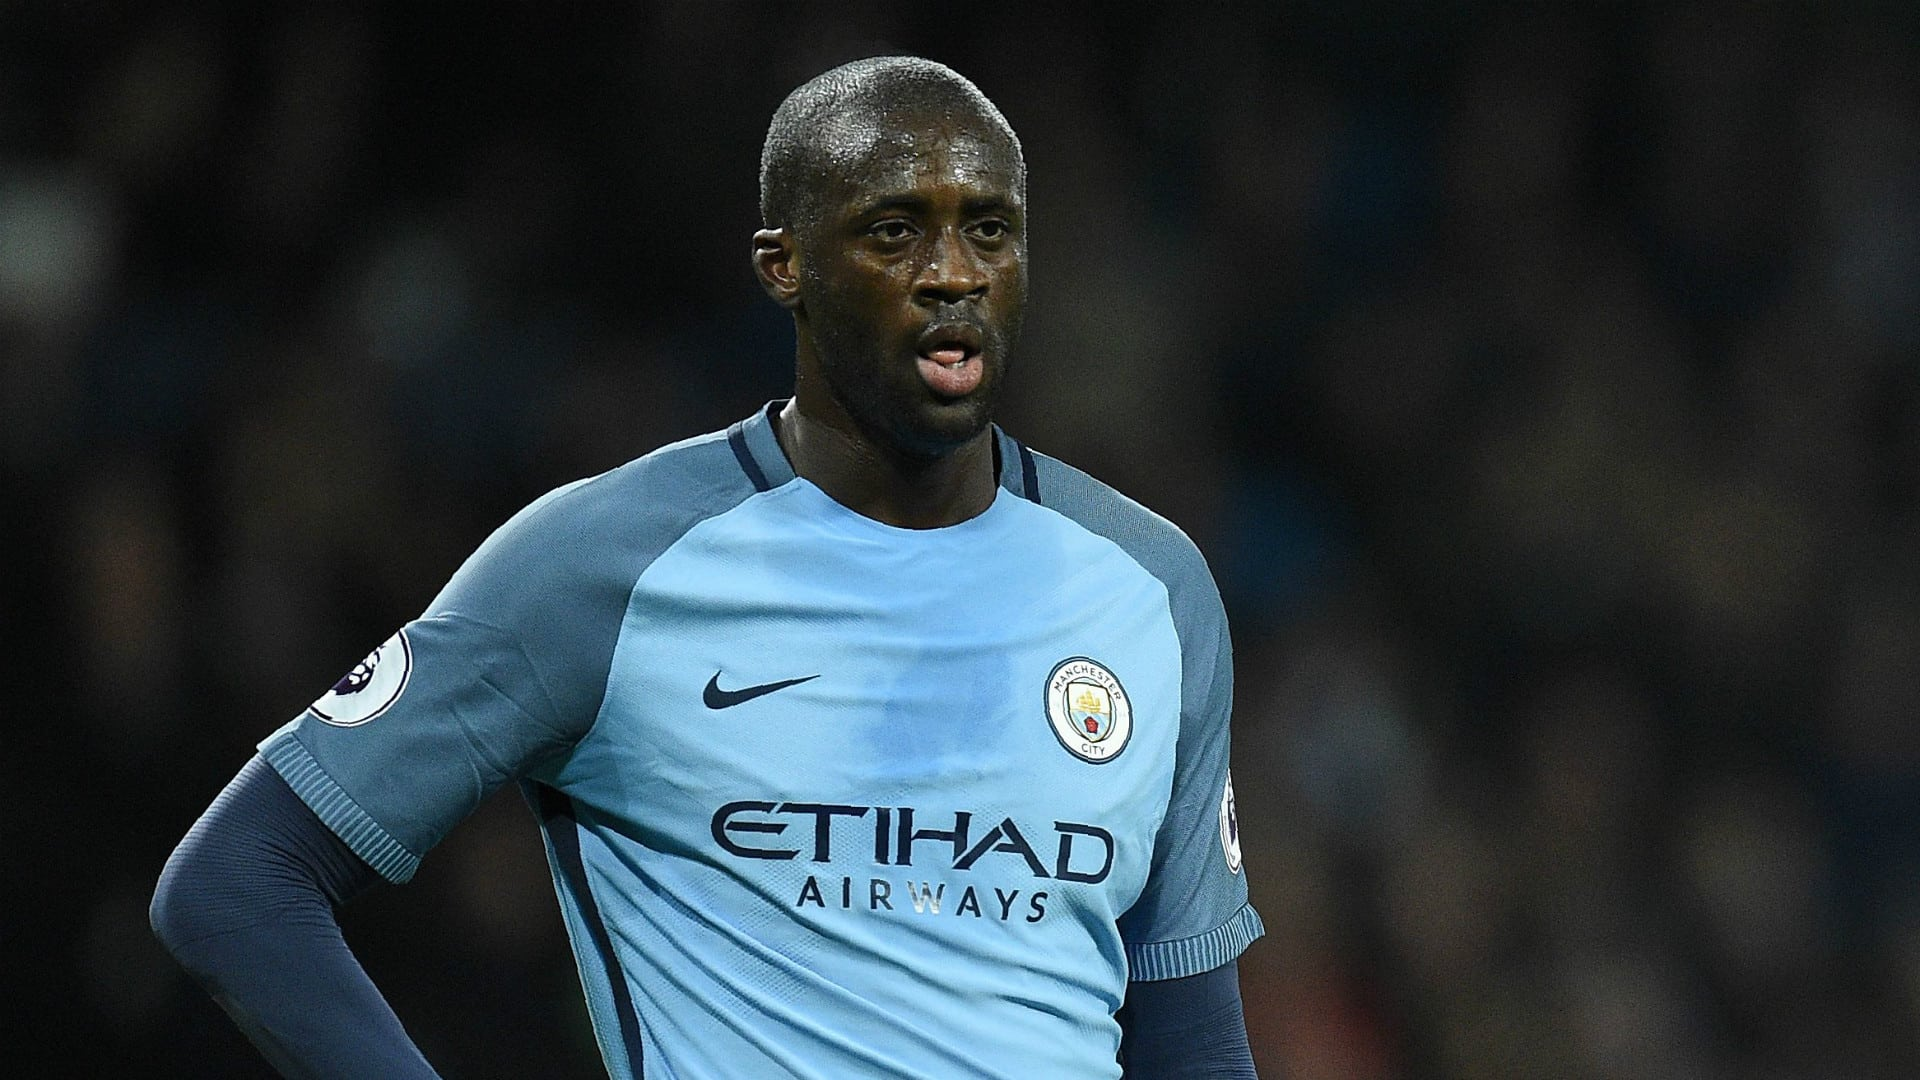 Yaya Touré has passed a medical in London, says agent